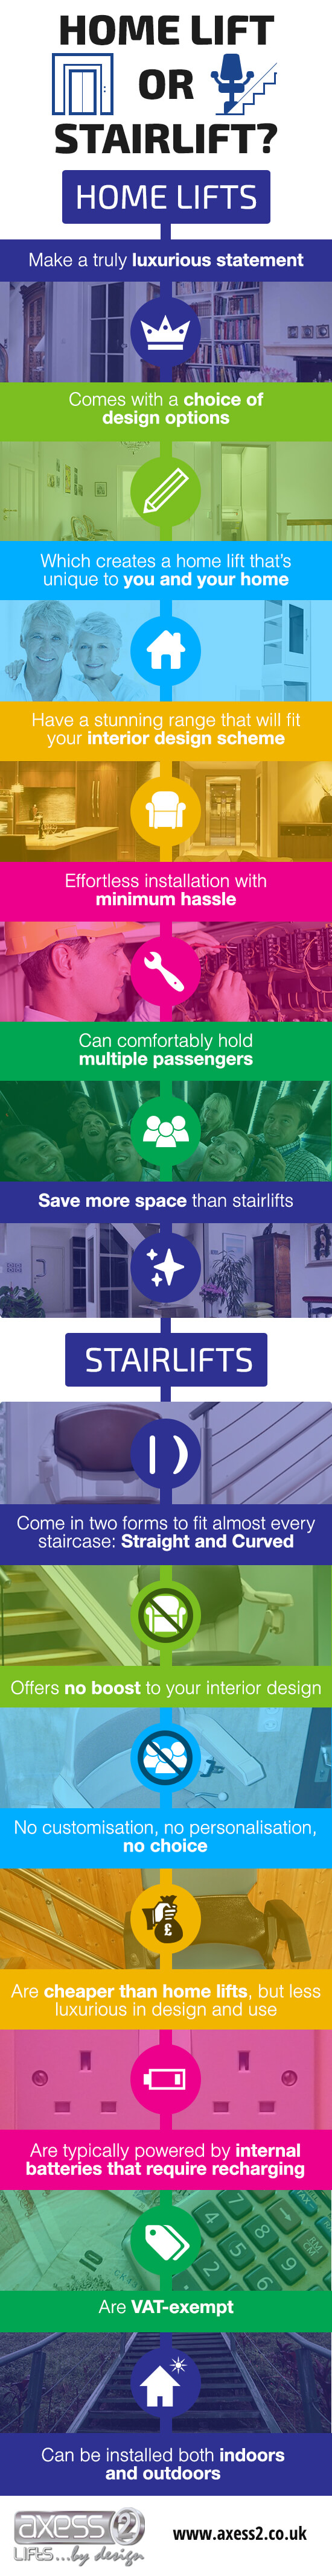 lifts-or-stairlists-infographic-plaza